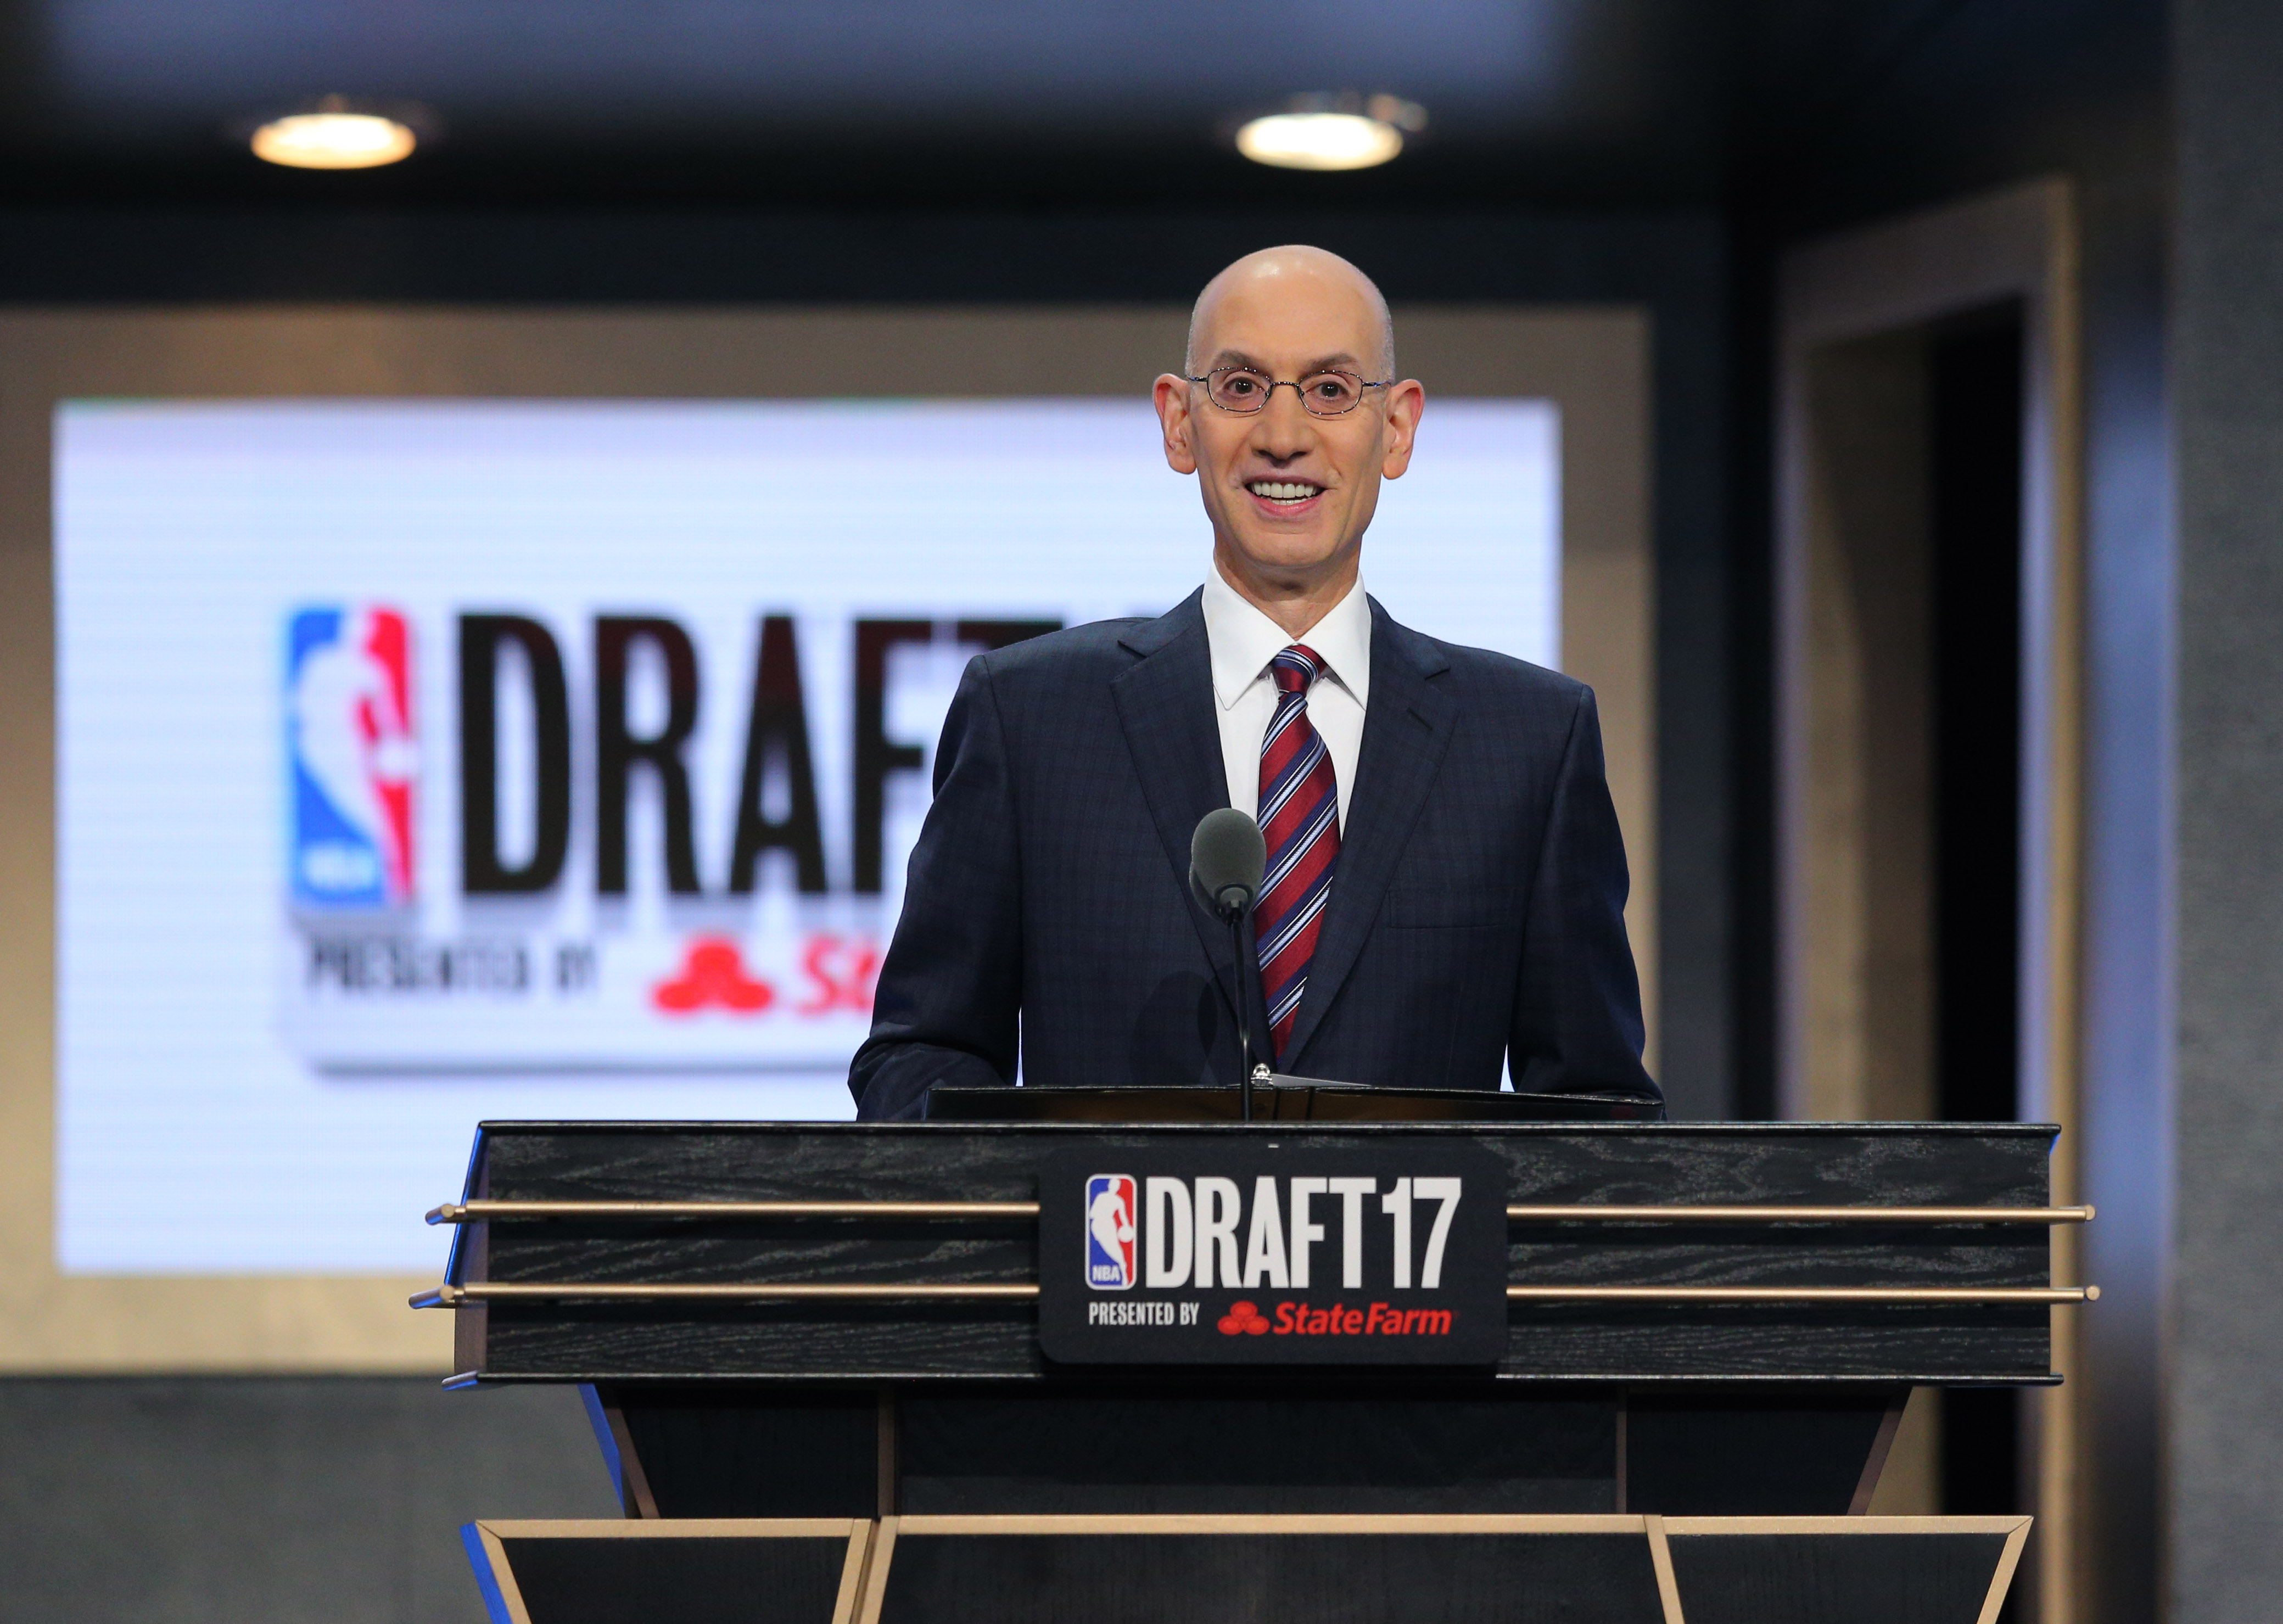 Nba Draft: Washington Wizards Stand Pat, Don't Trade Into Second